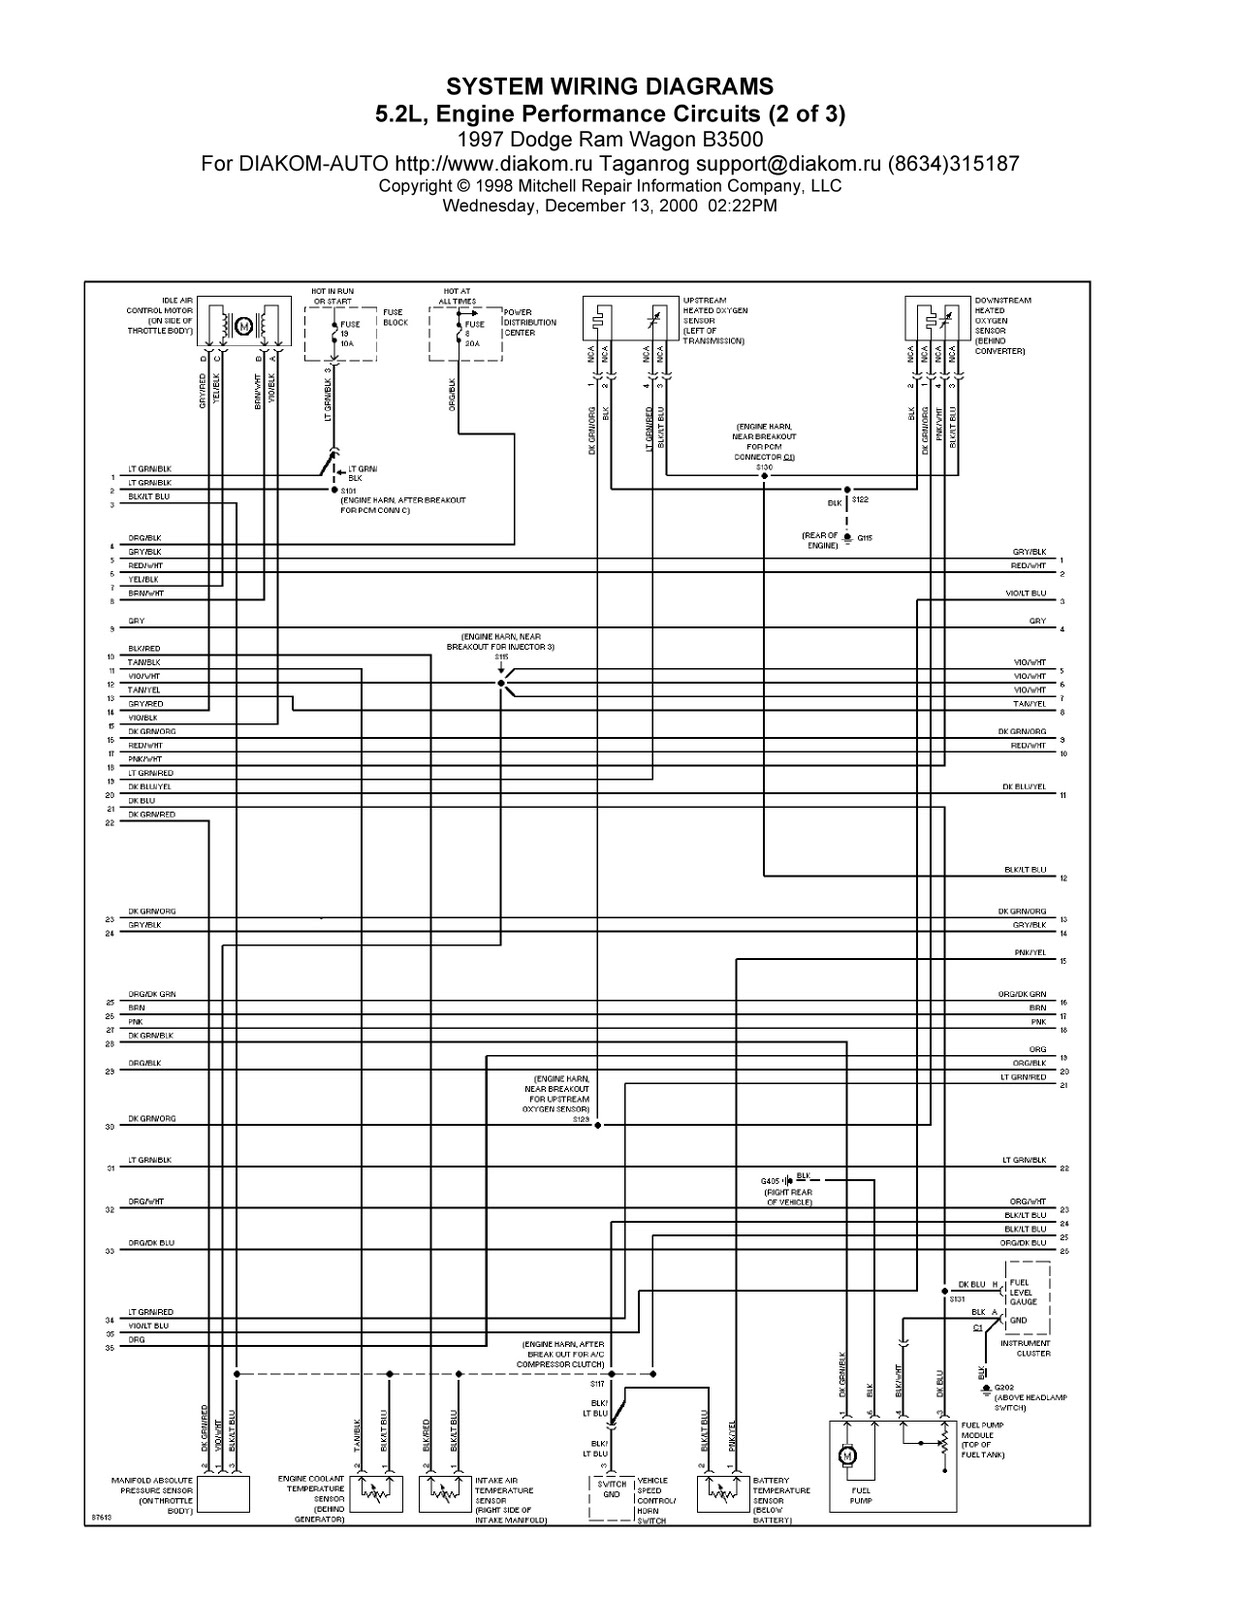 Dodge Engine Diagram Wiring Library 2001 Caravan 1997 Ram Wagon B3500 System 5 2l 97